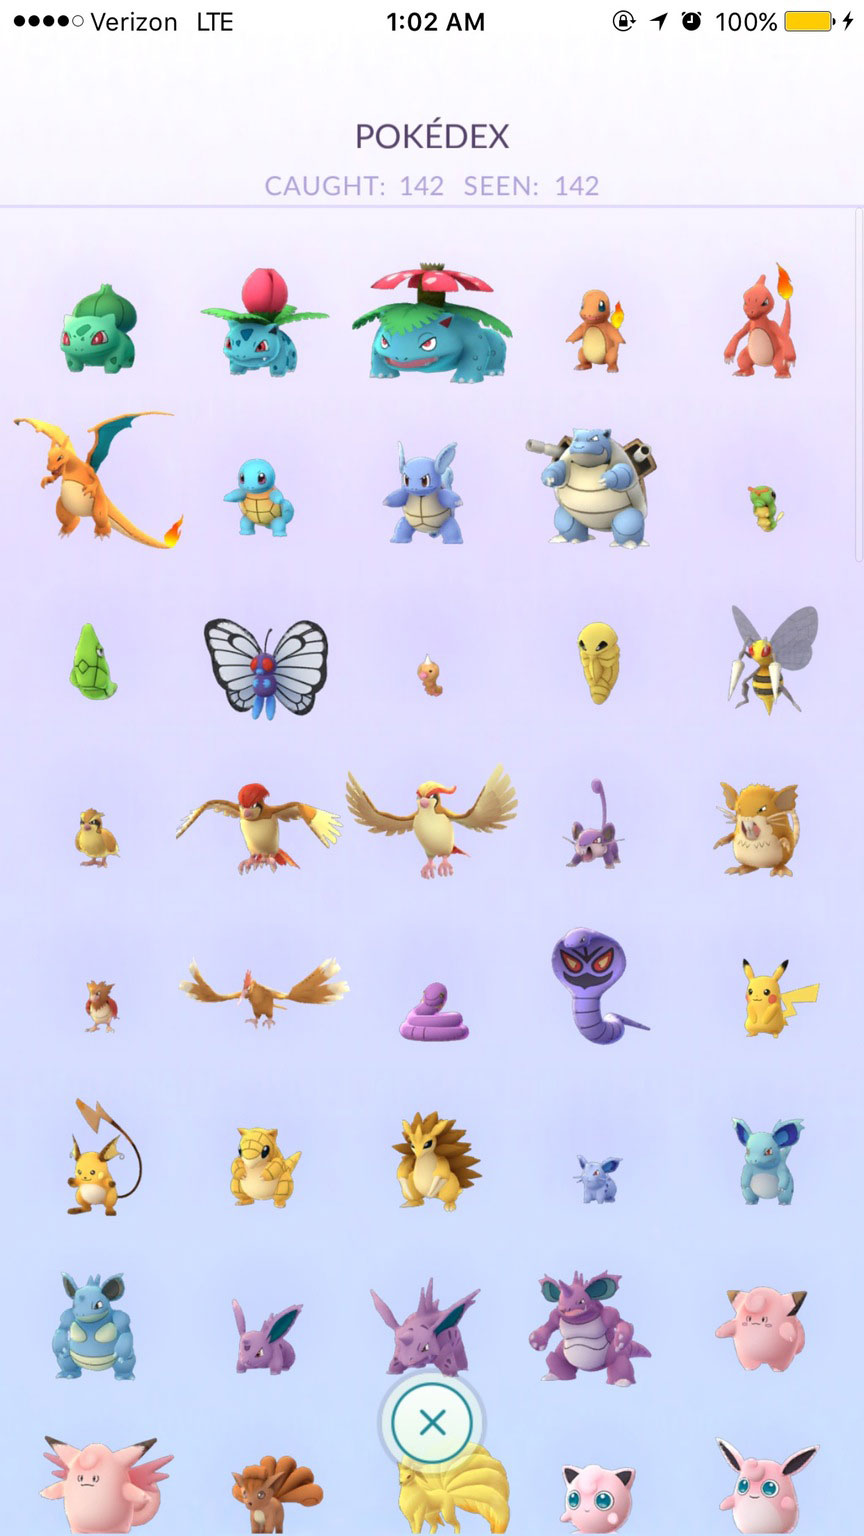 What Happens After You Catch Every Pokémon? Find Out Here.